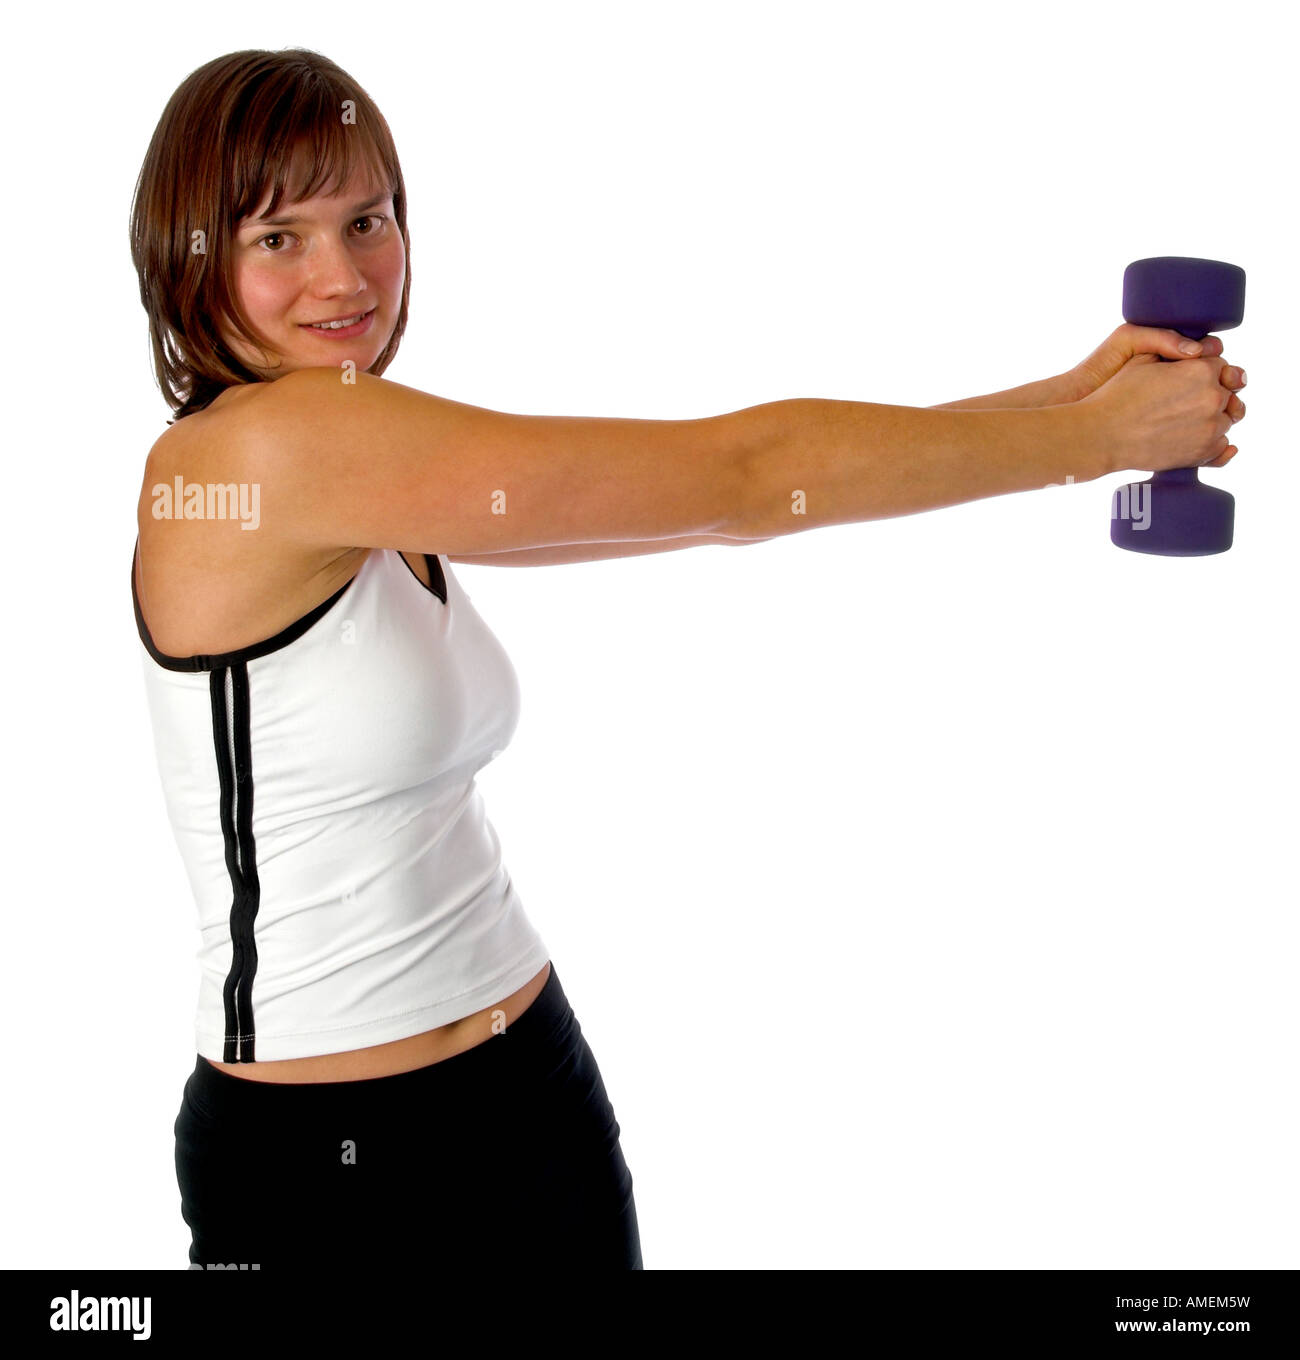 Young woman doing weight training - Stock Image